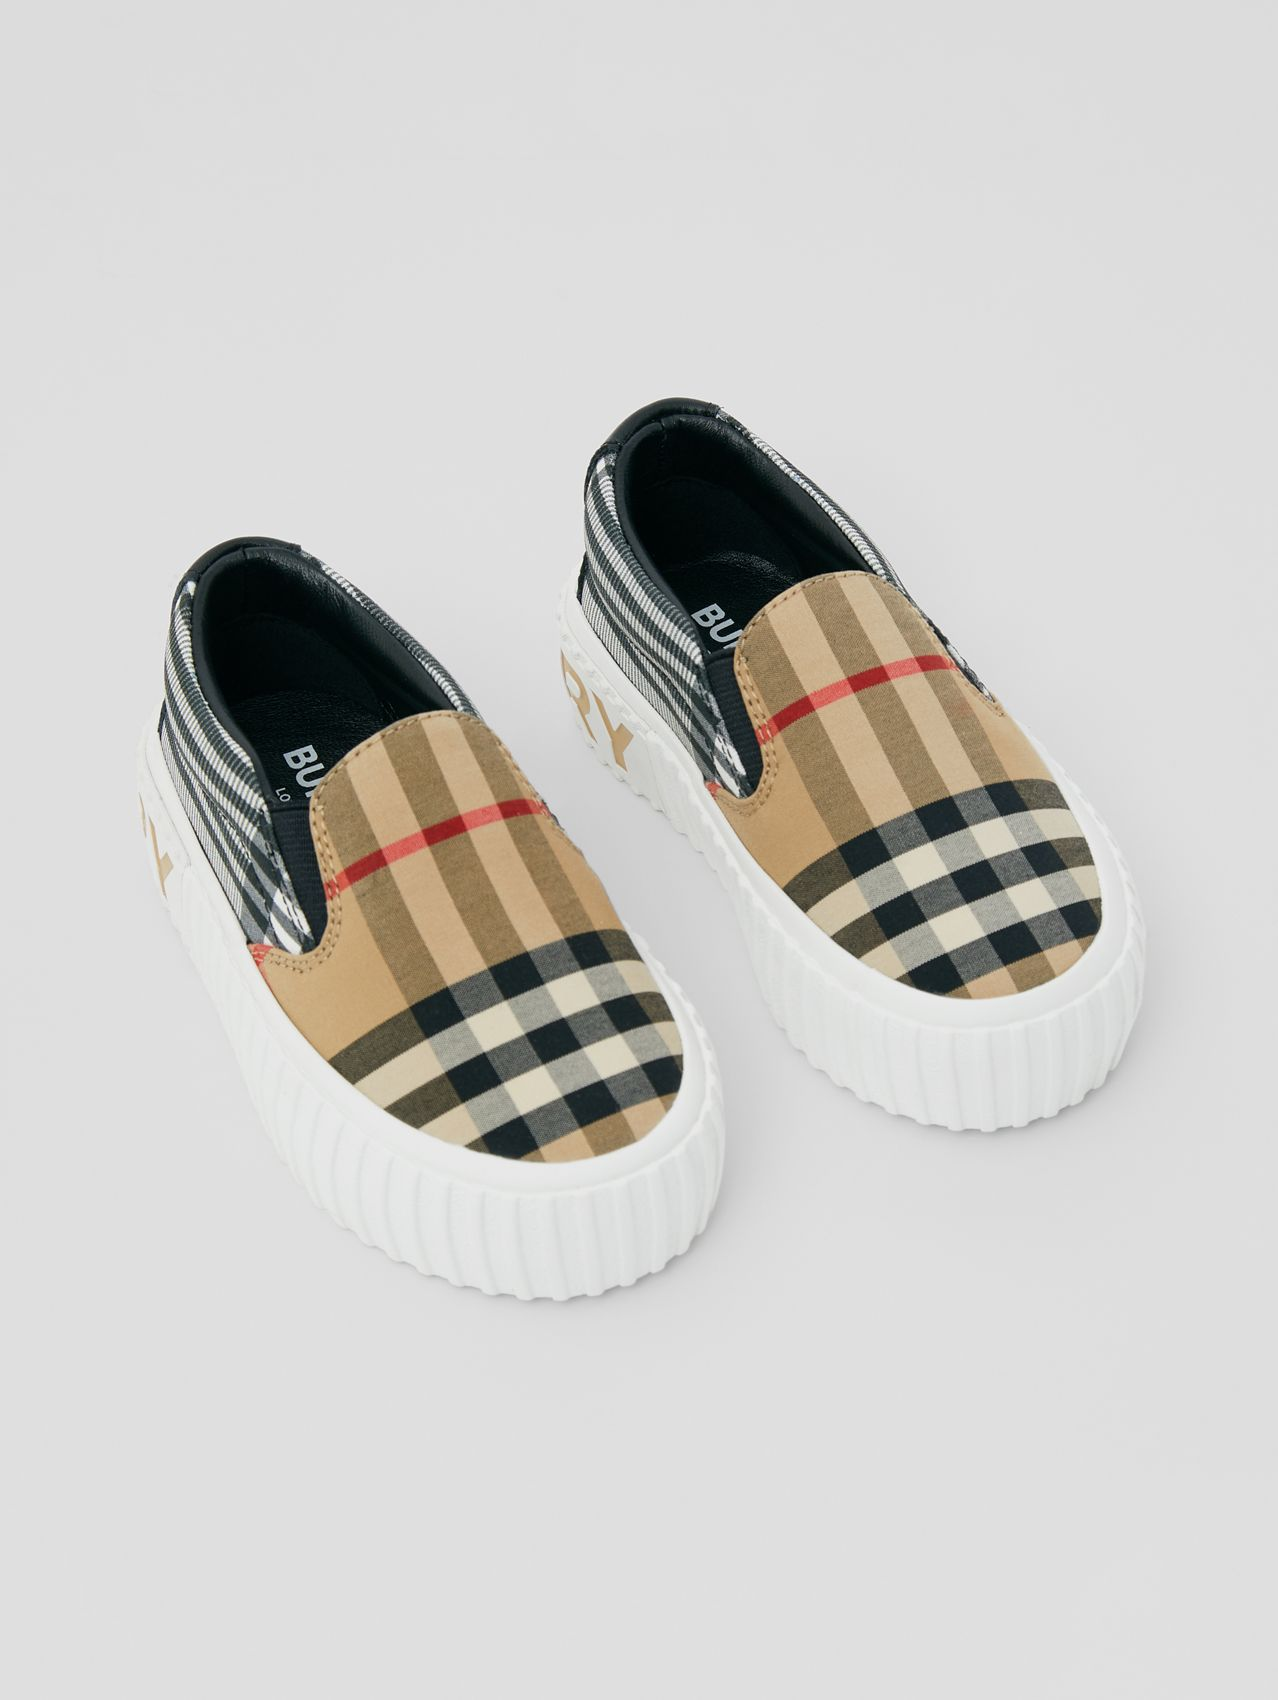 Contrast Check Cotton Slip-on Sneakers in Archive Beige